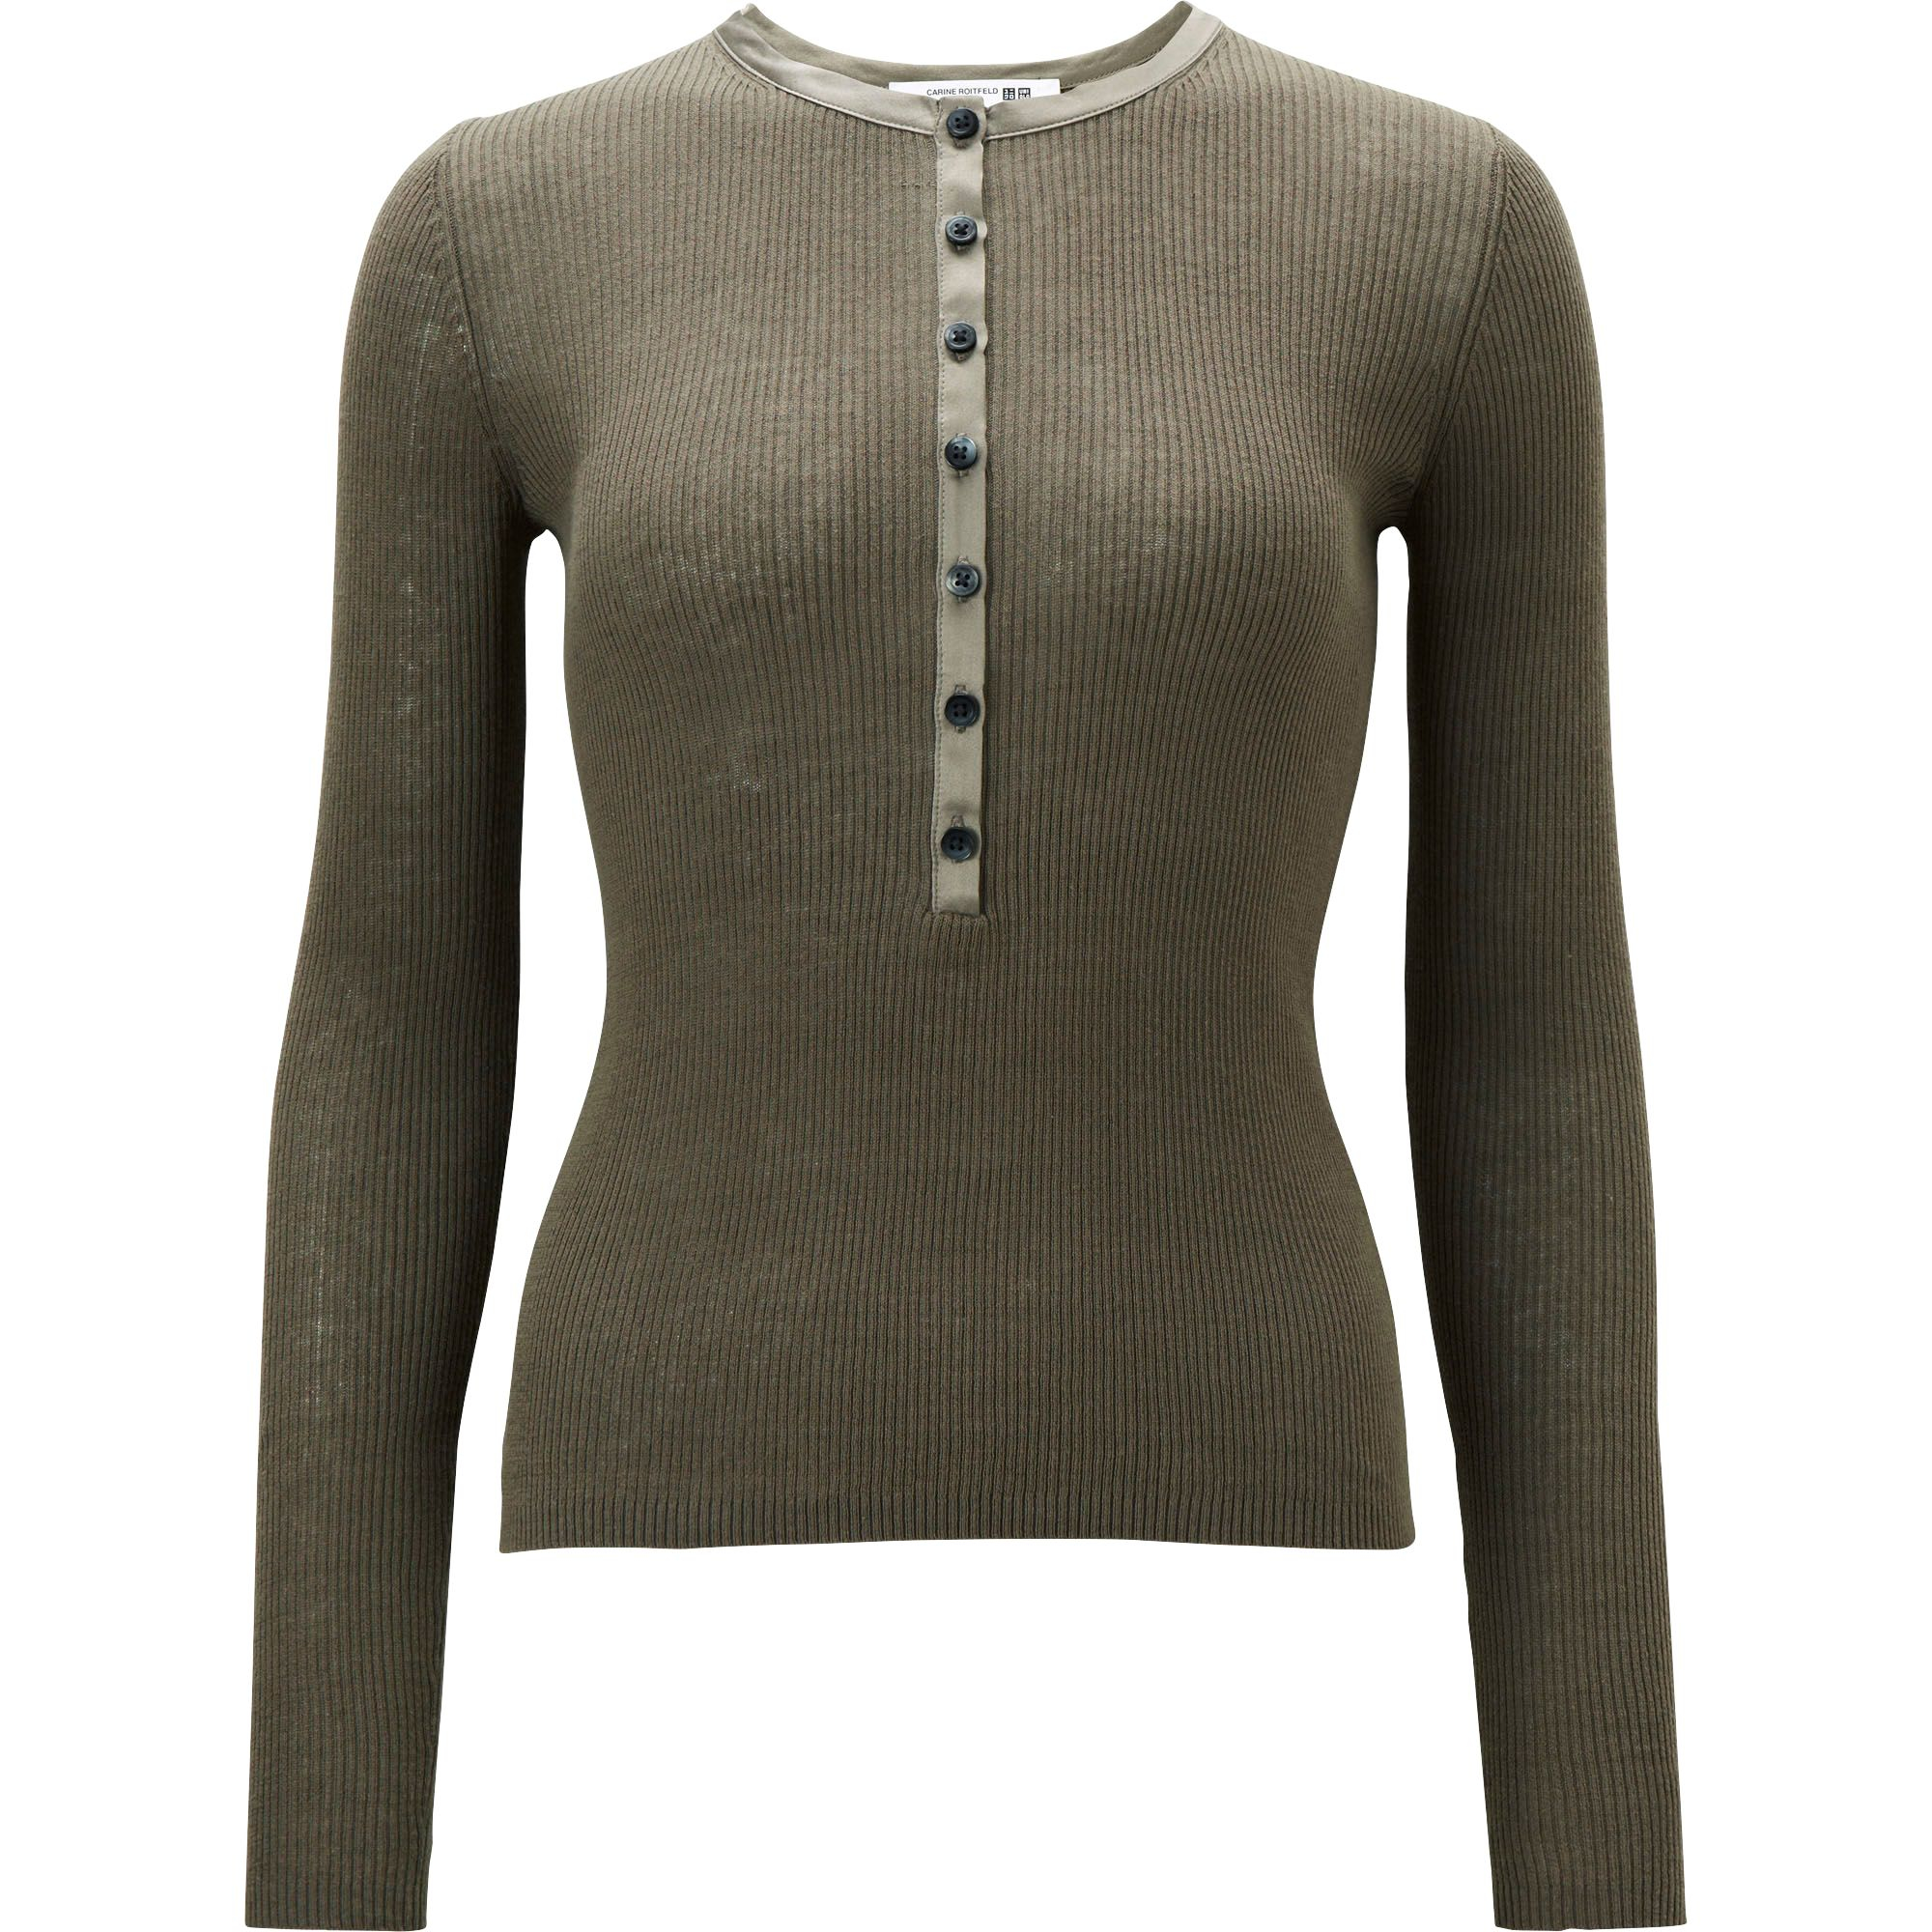 Uniqlo women carine rib henley neck long sleeve sweater in natural